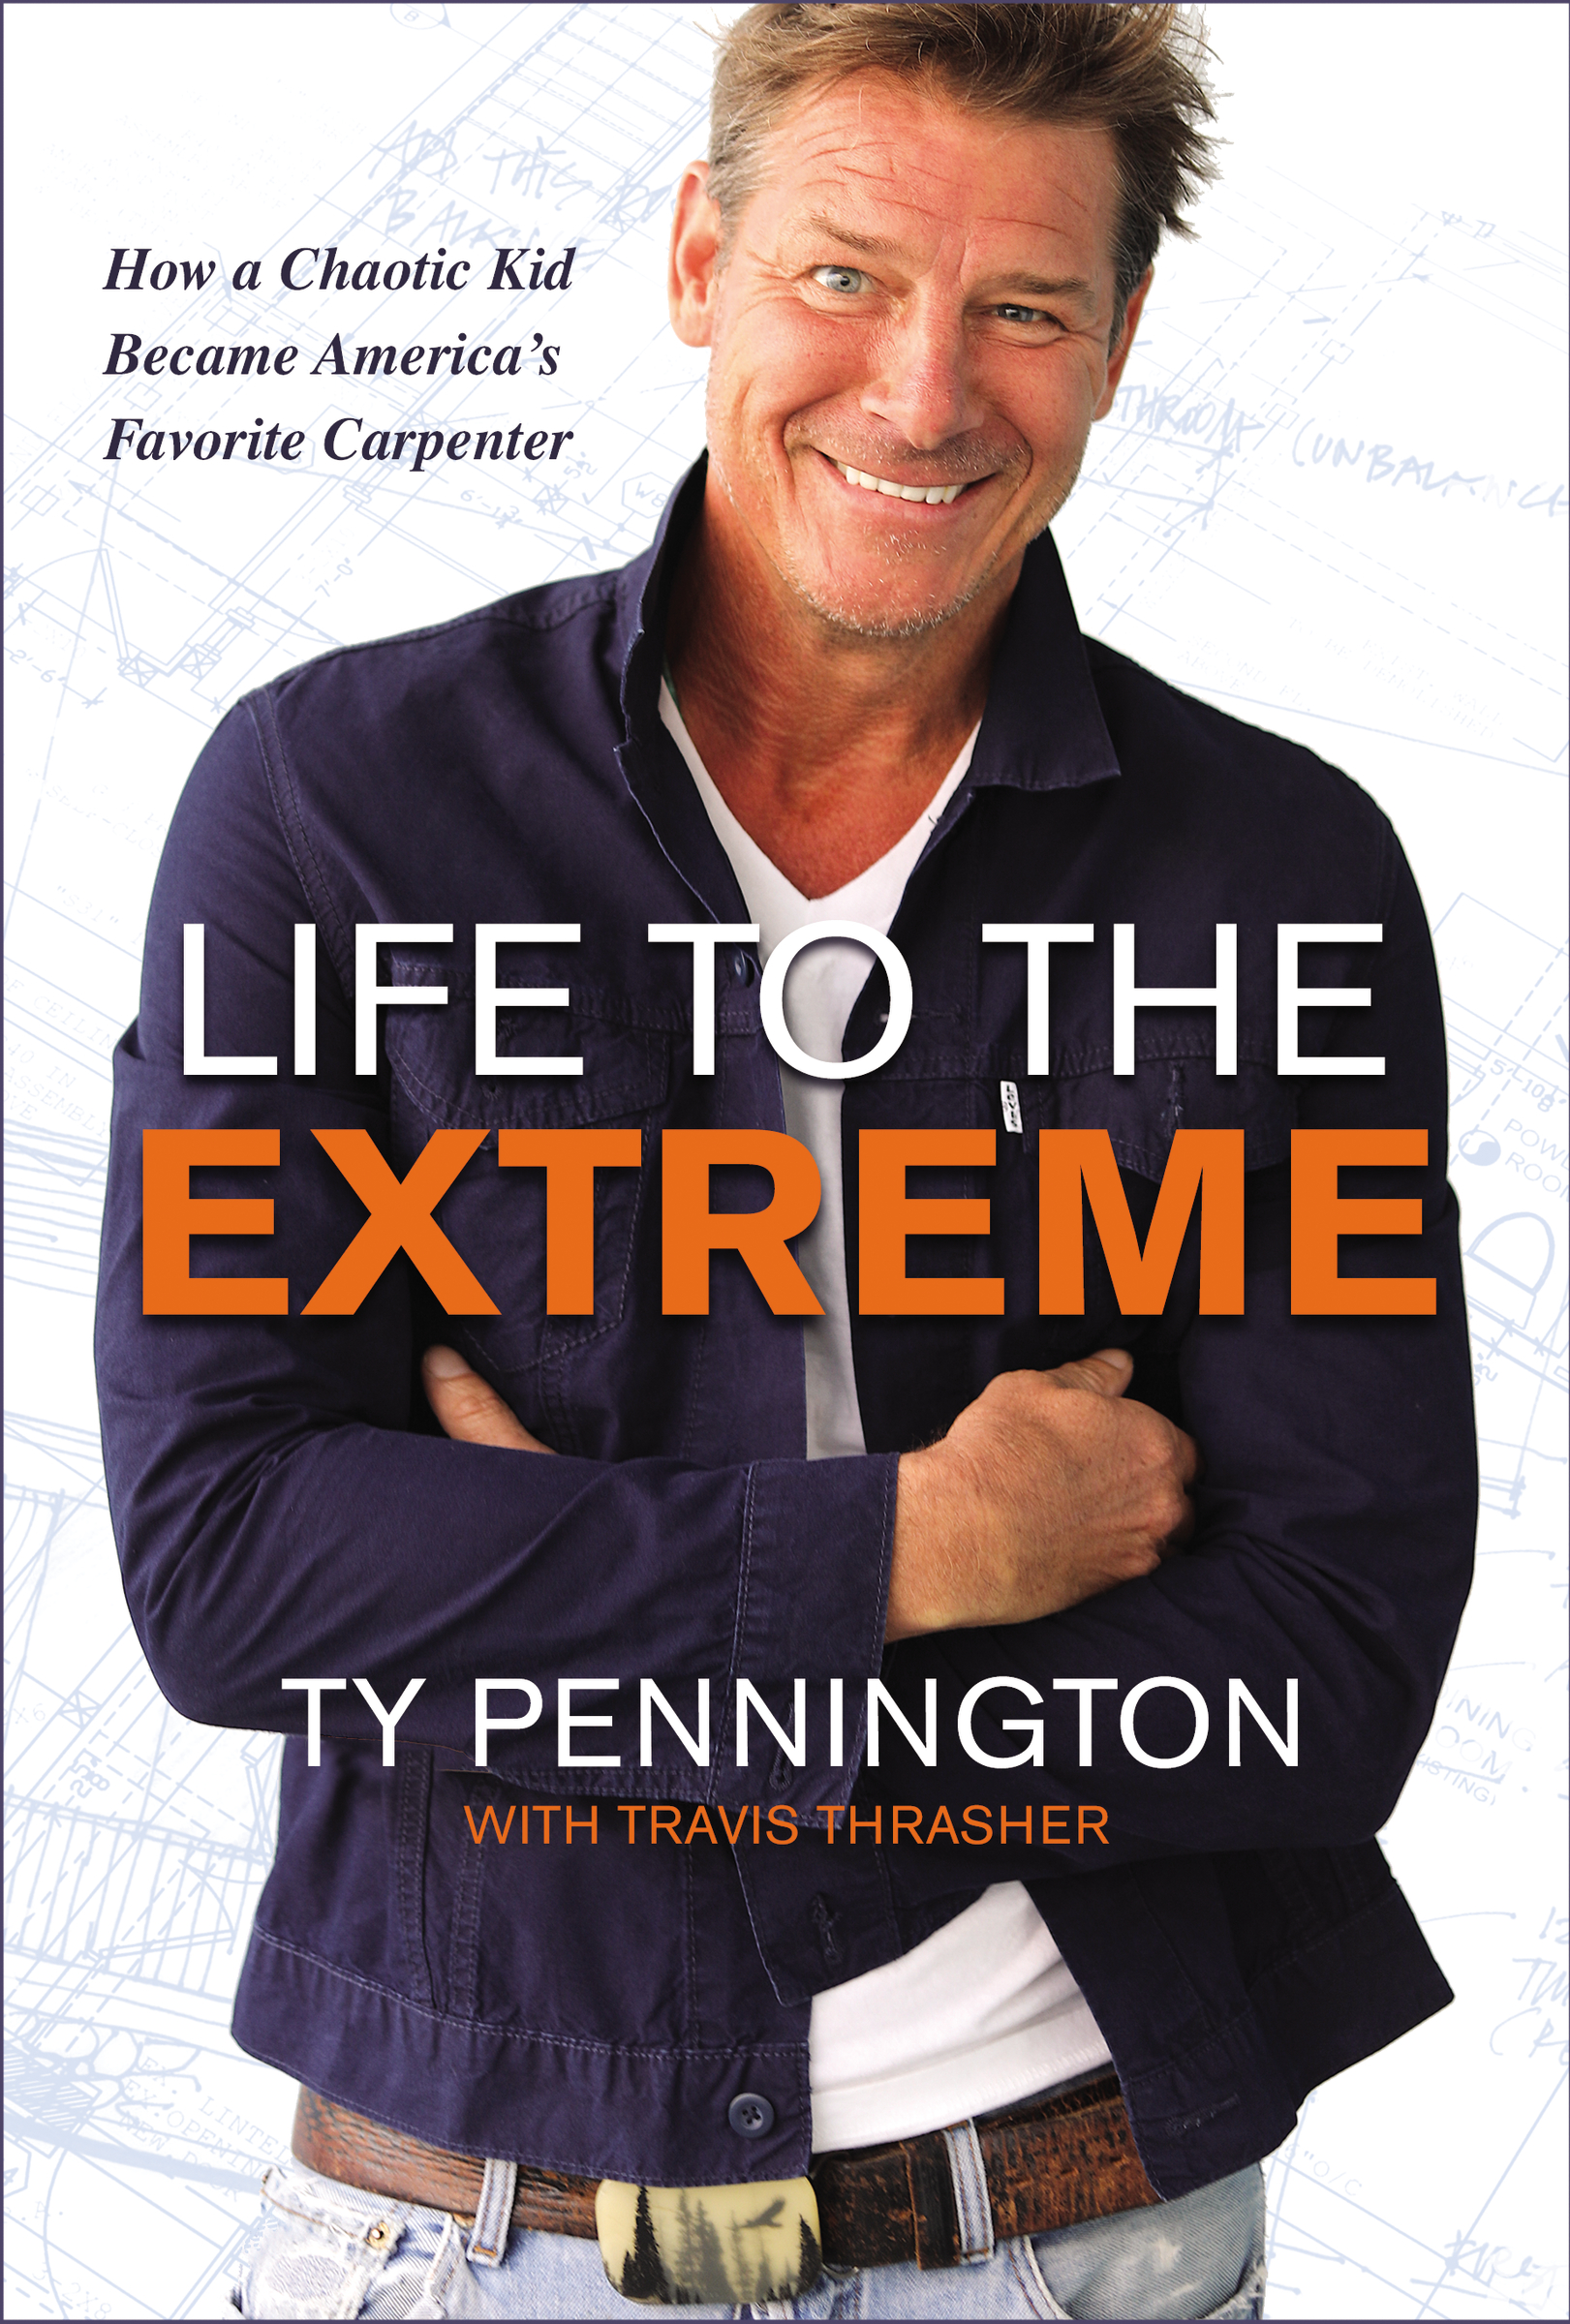 Life to the extreme cover image